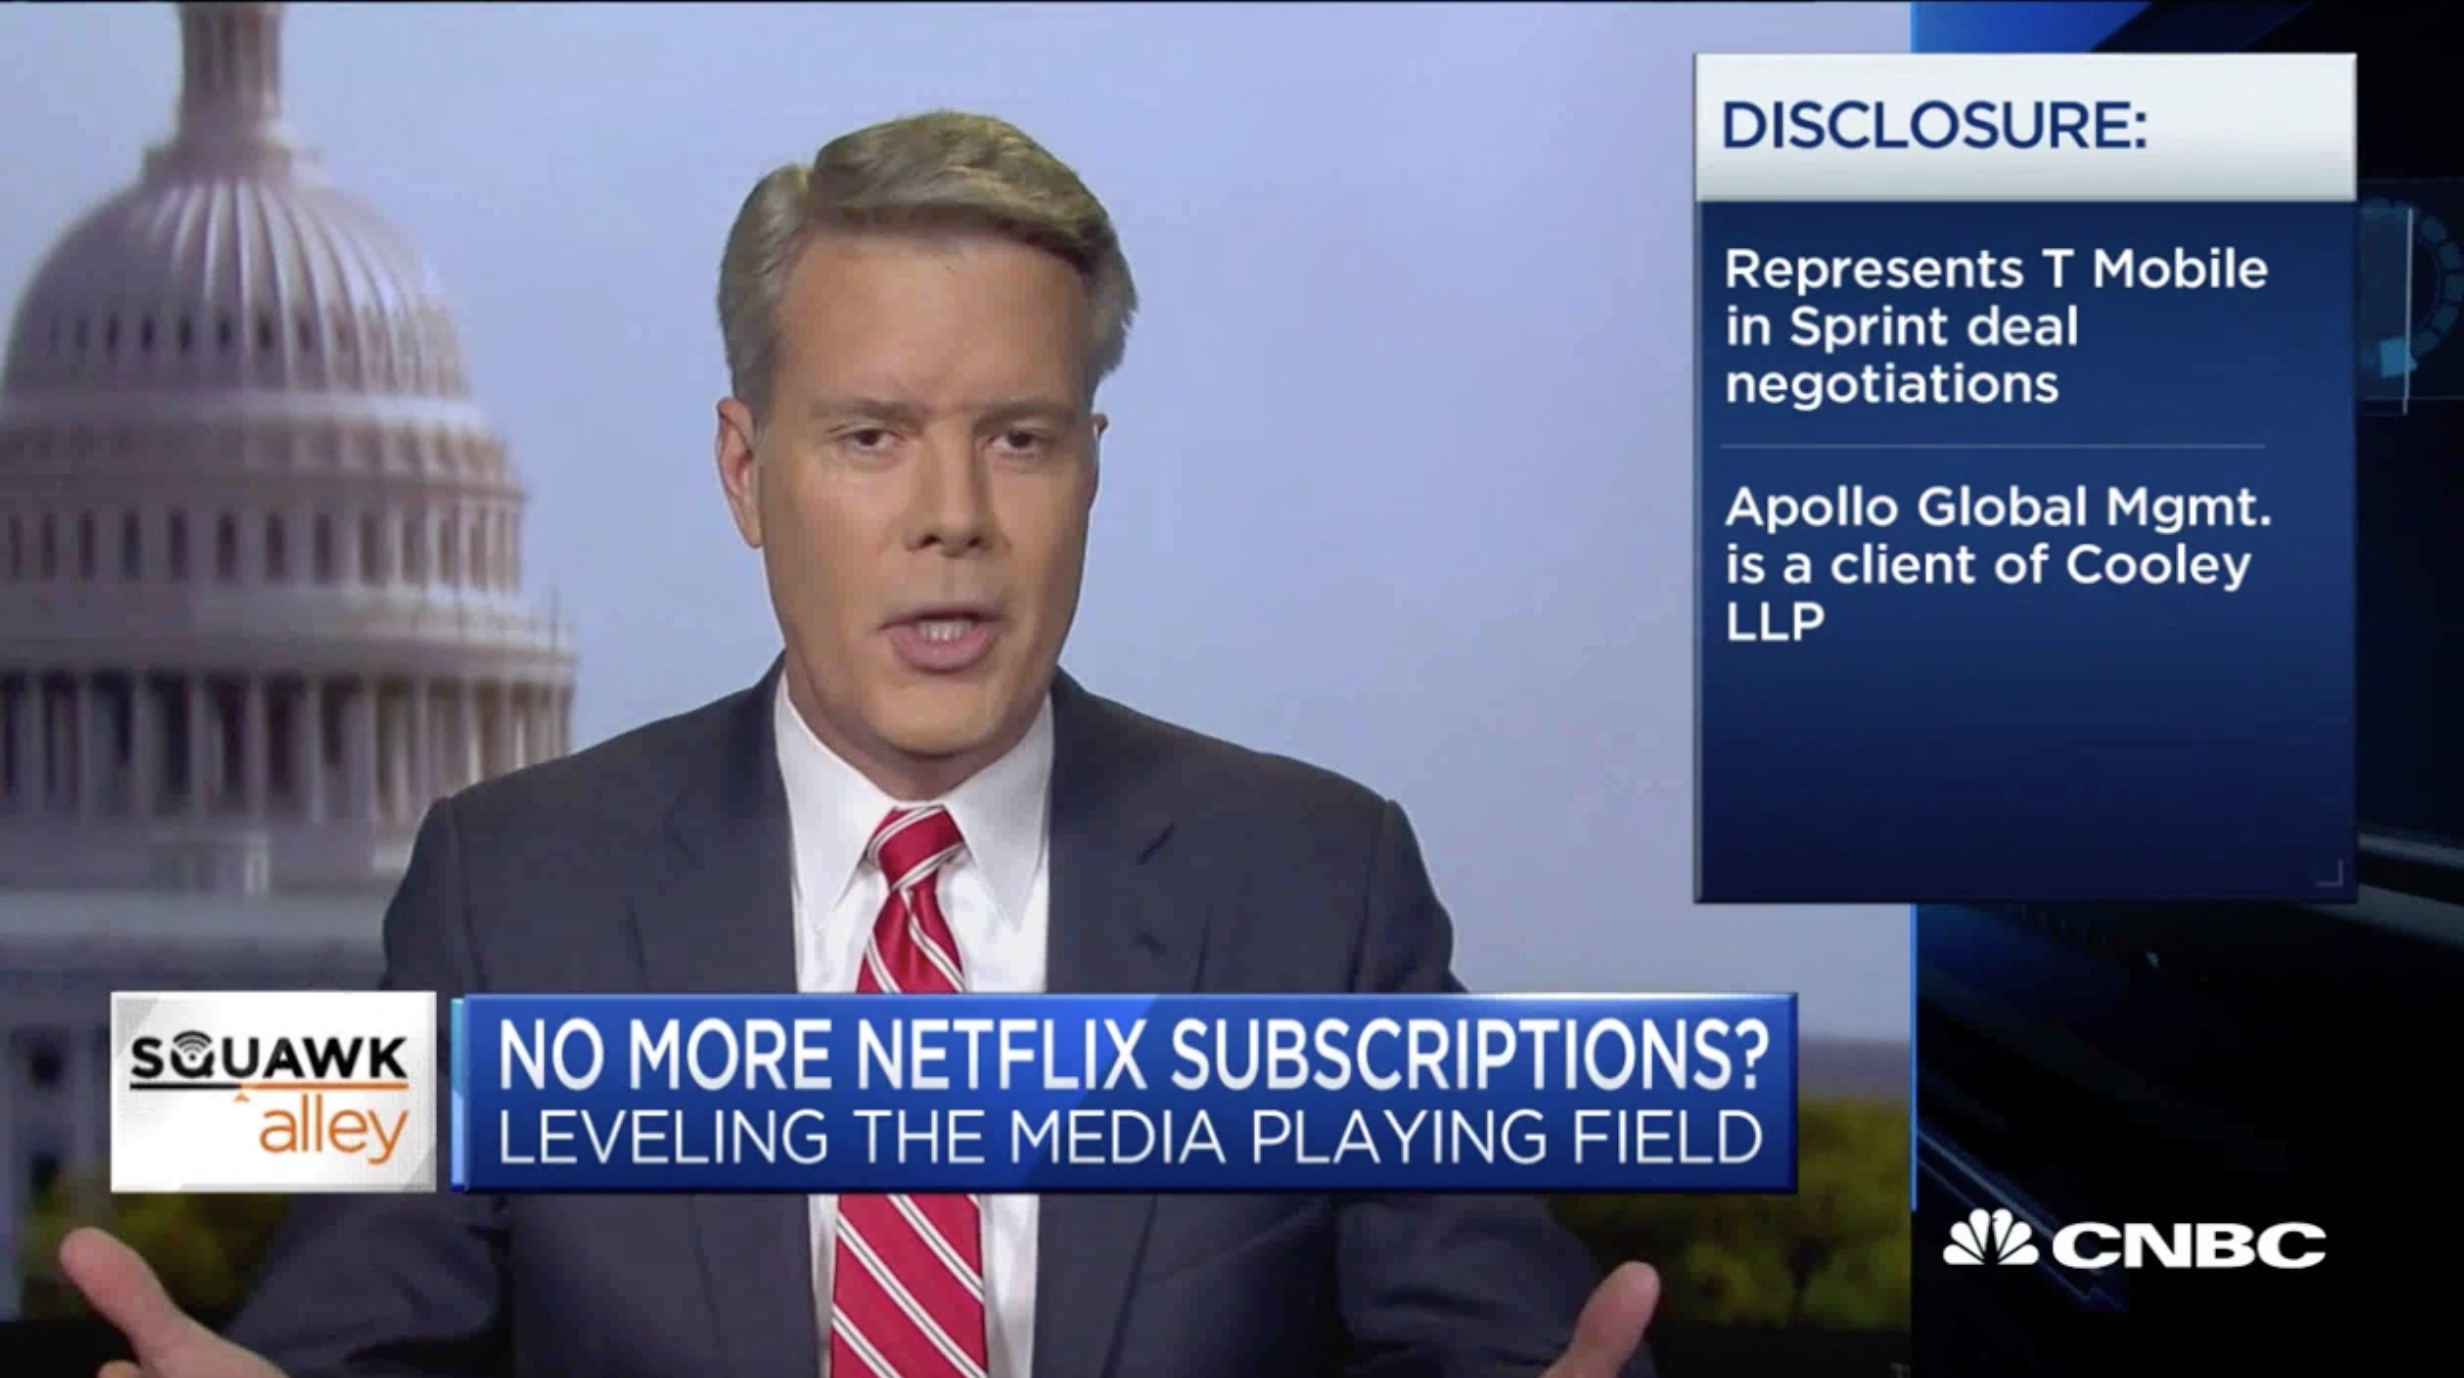 Robert McDowell discusses the FCC and the importance of leveling the playing field between broadcasters and streaming providers.